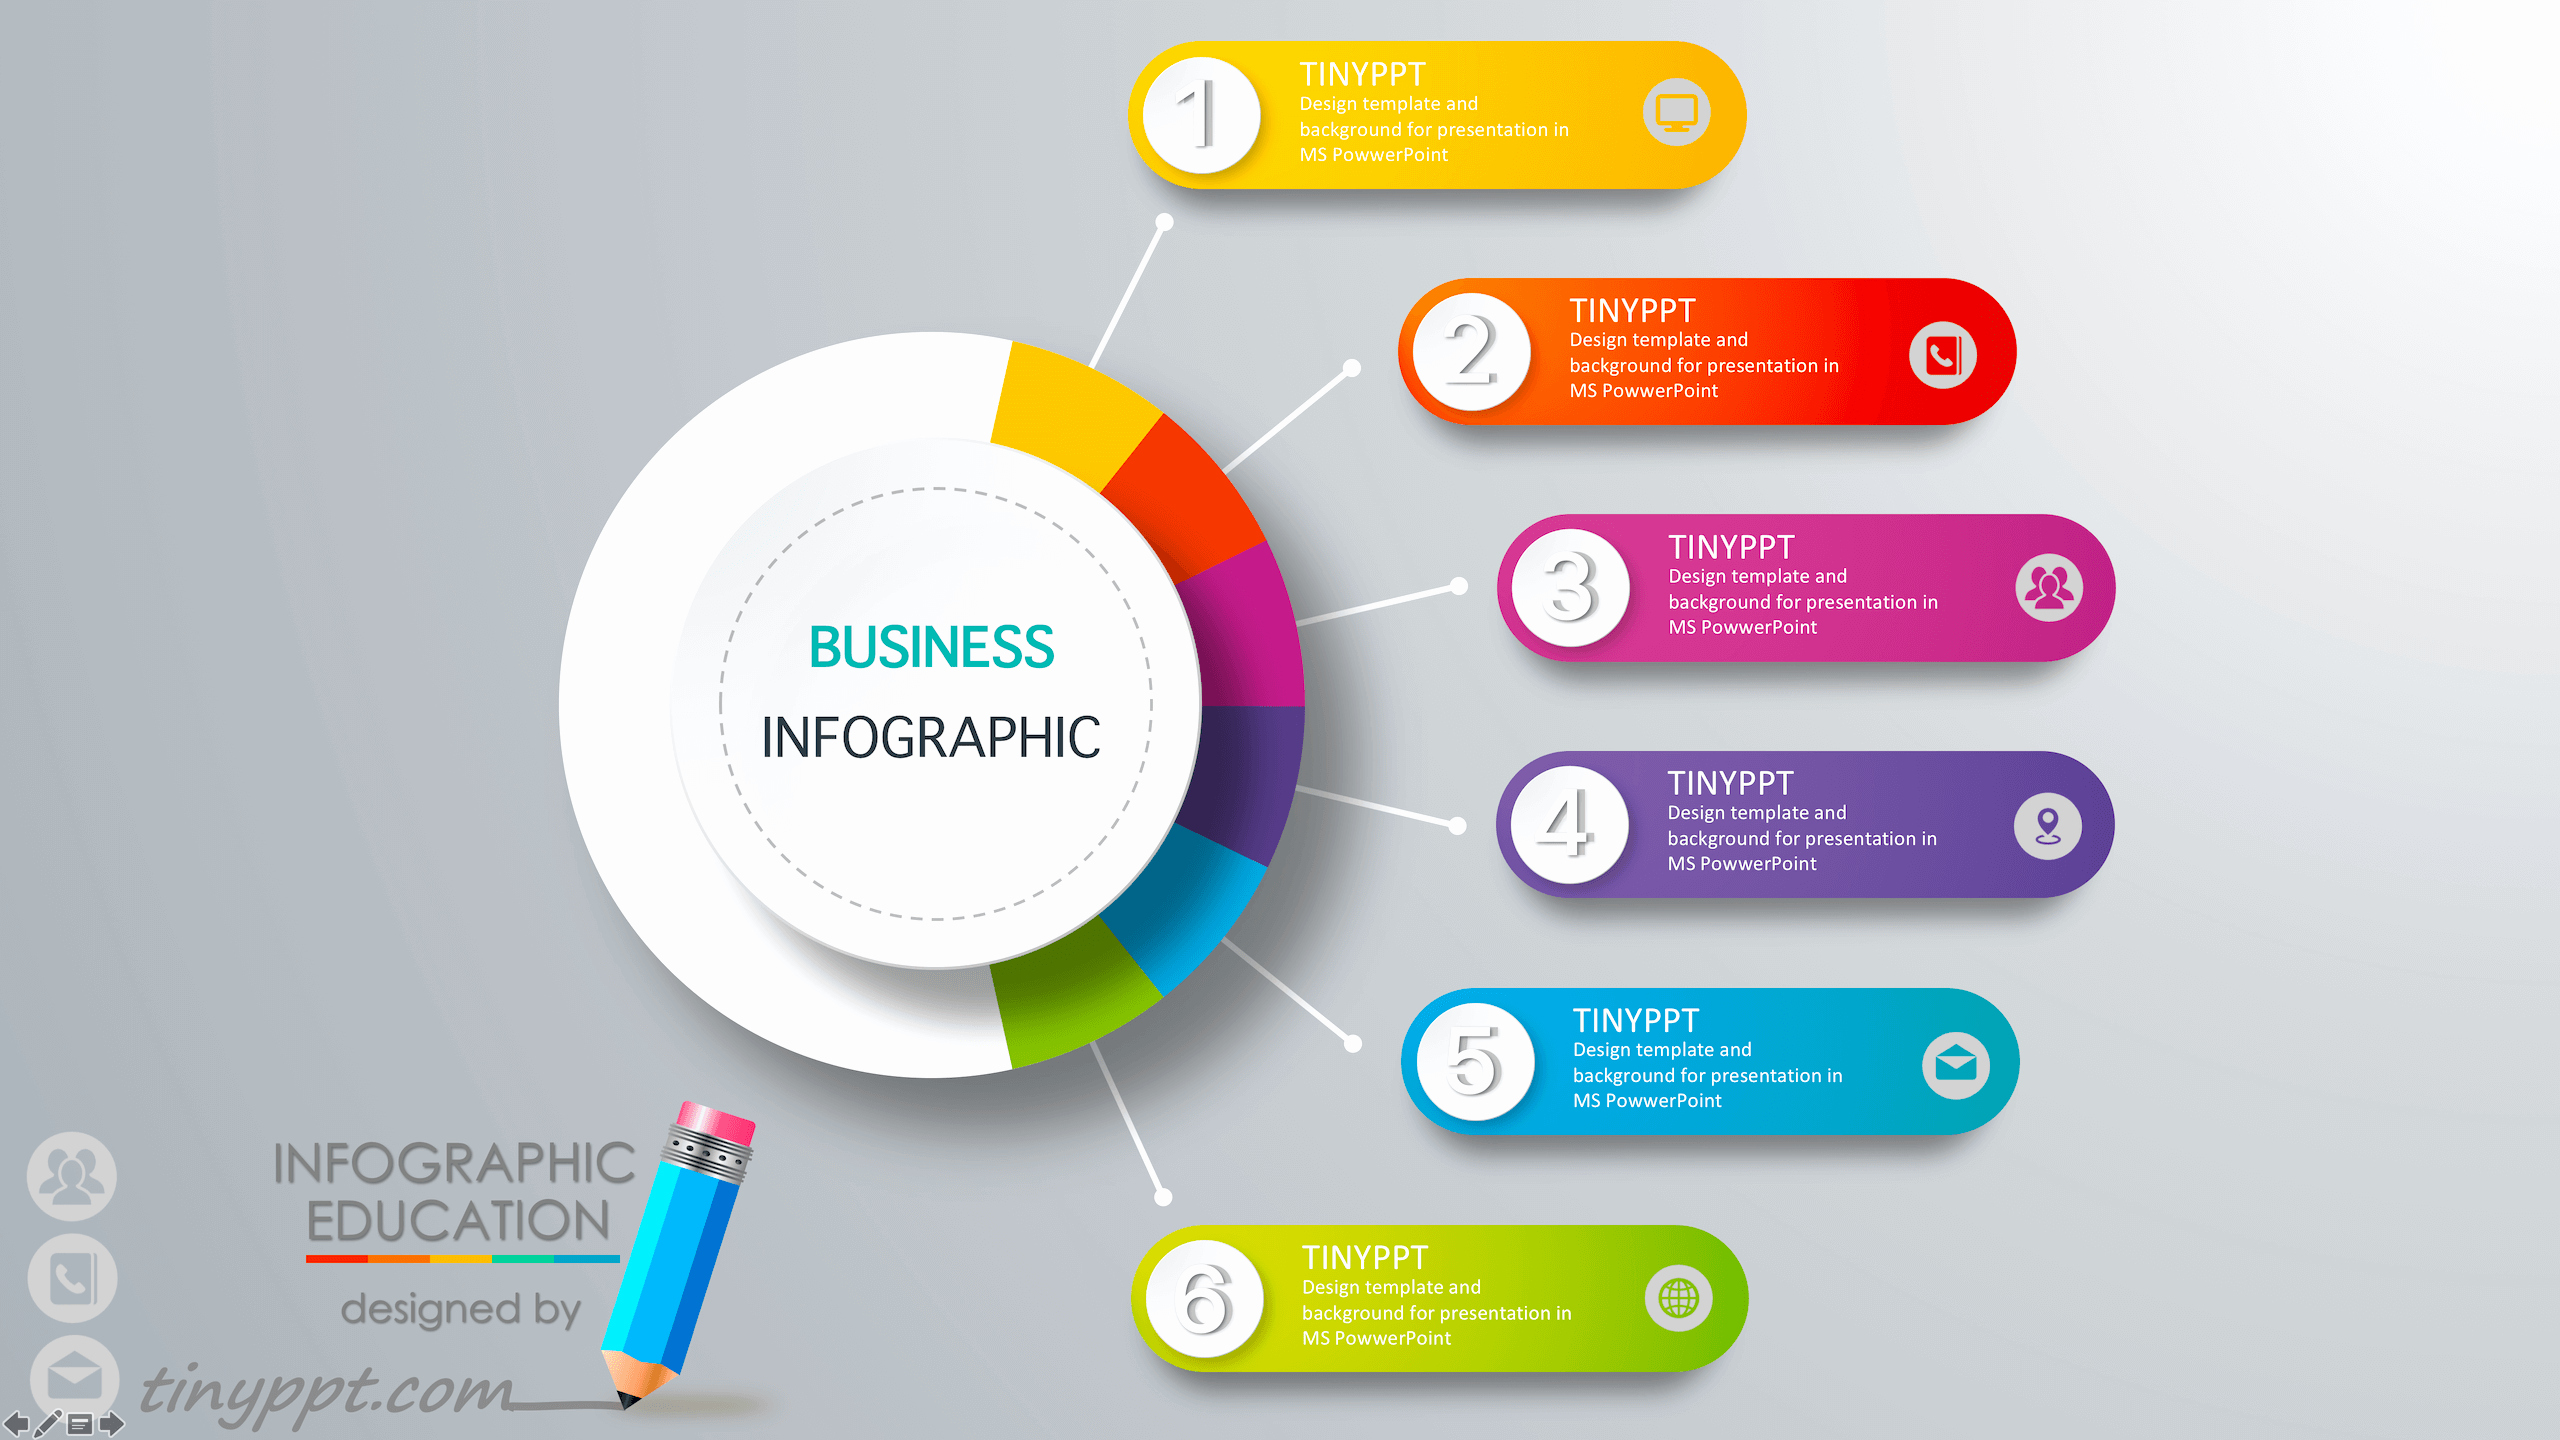 Powerpoint Slide Templates Free Download Lovely Powerpoint Infographic Icons Powerpoint Timeline Templates